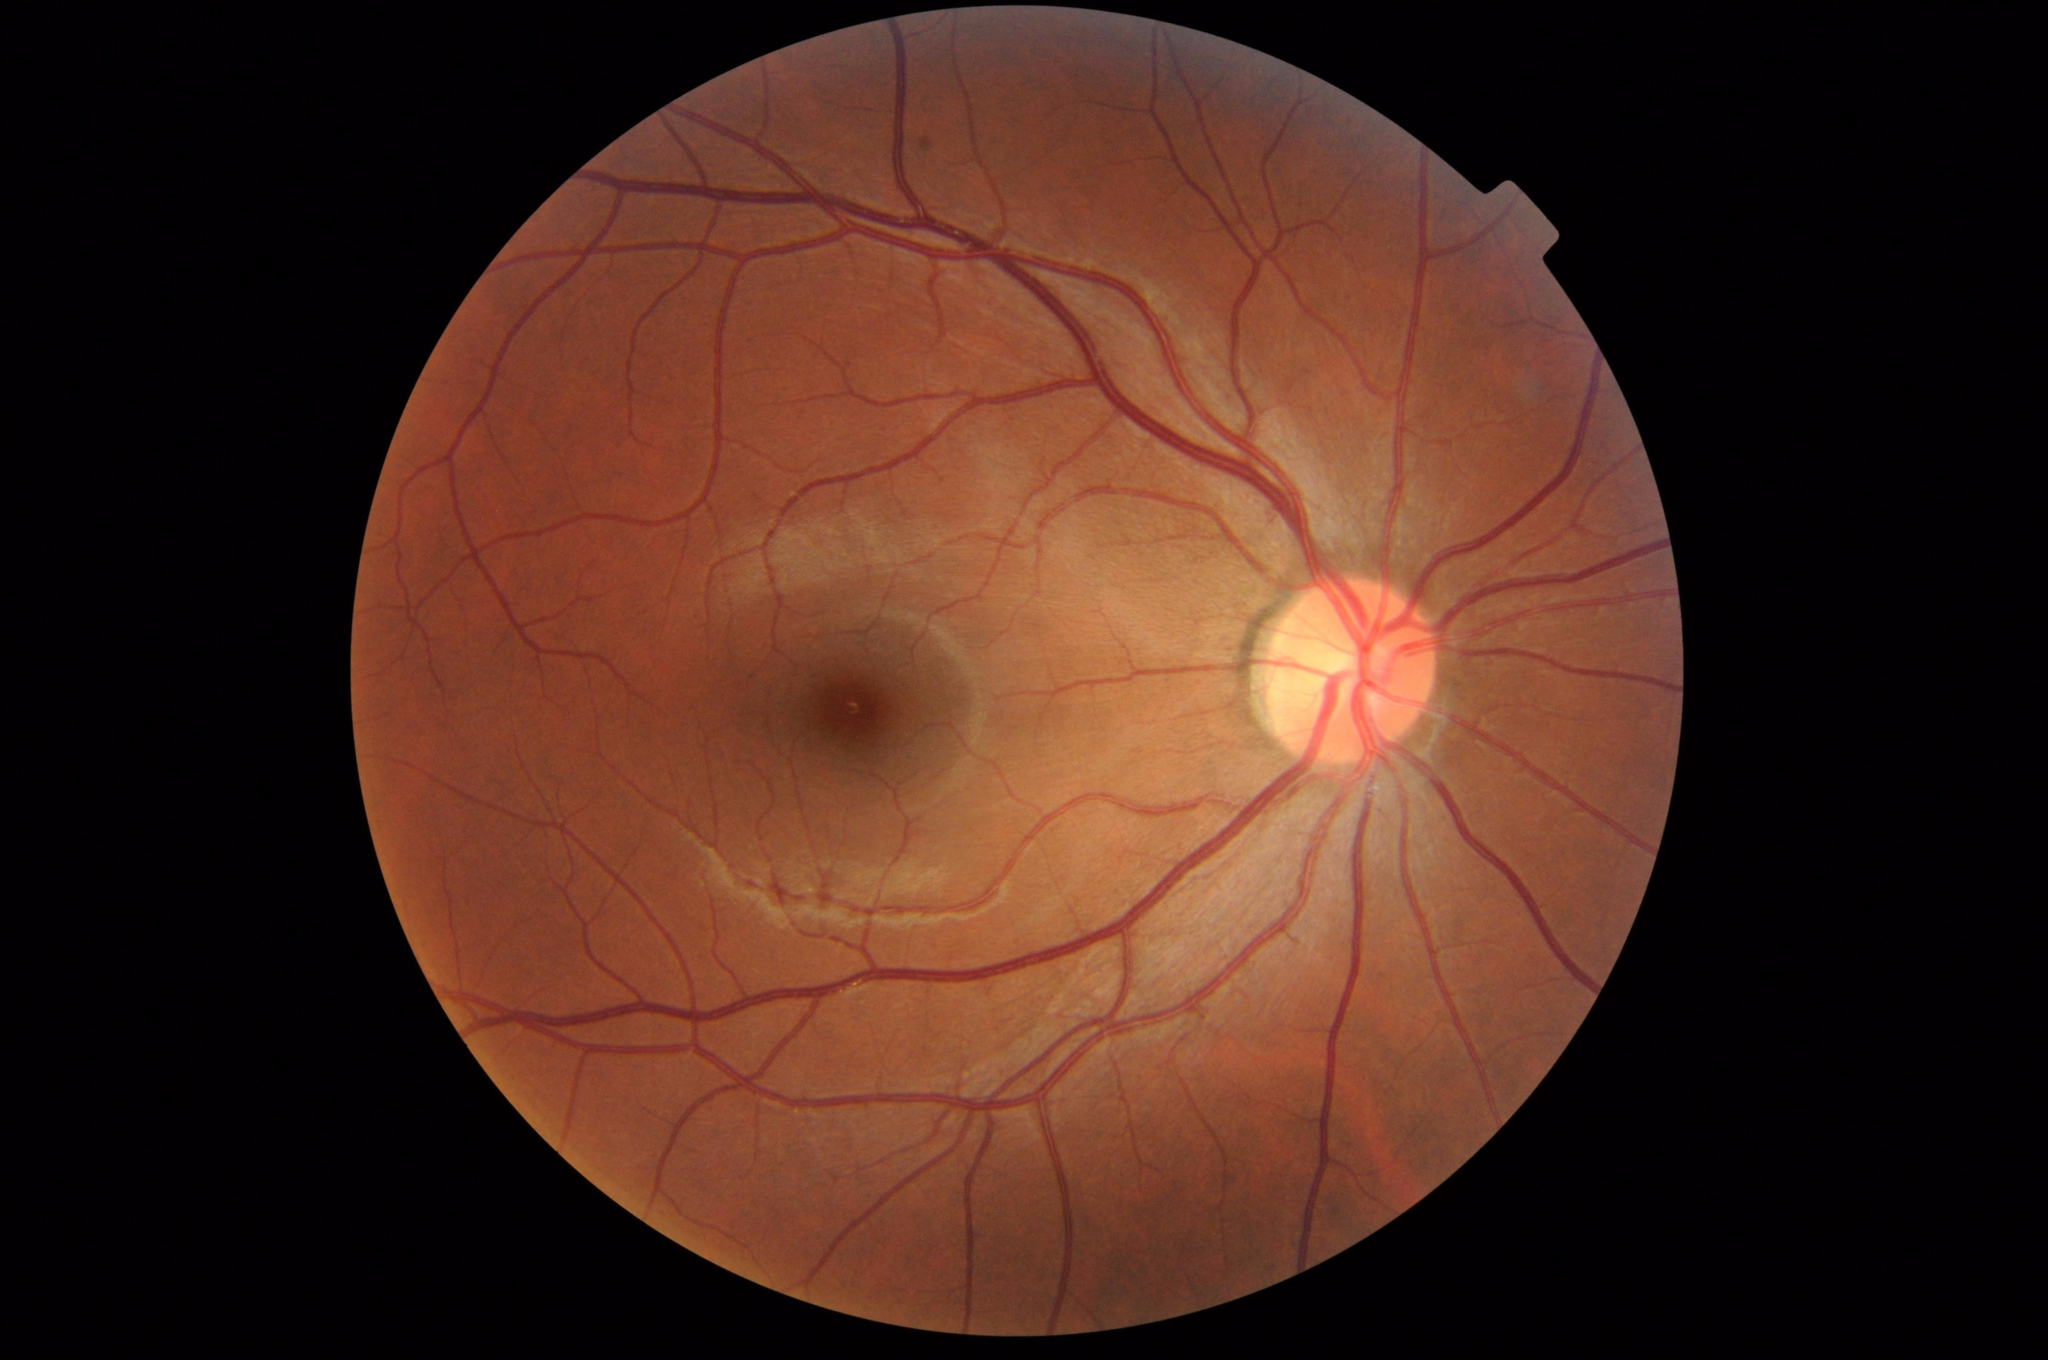 Fundus photograph of a healthy right eye (OD) from a myopic Asian male patient. Age 23